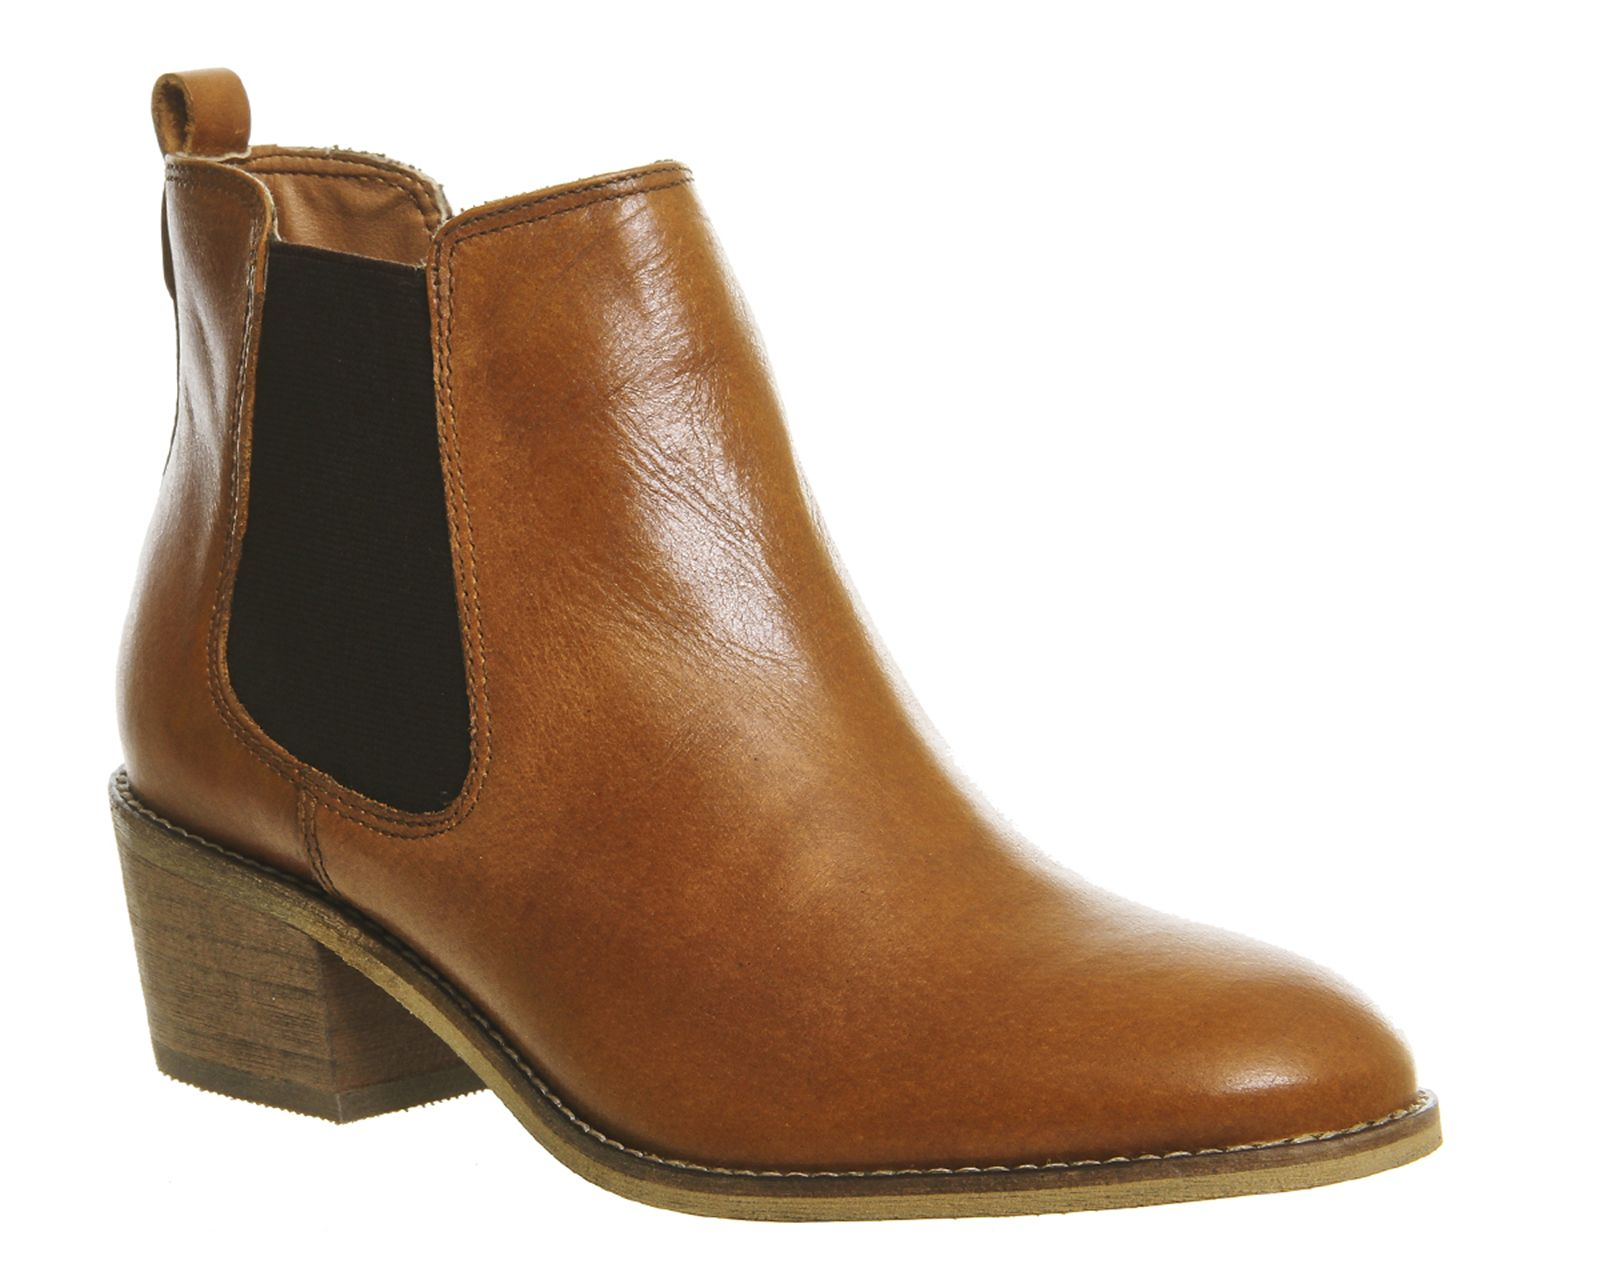 bc5370c95e4cc Buy Brown Leather Office Jenkins Chelsea Boots from OFFICE.co.uk ...